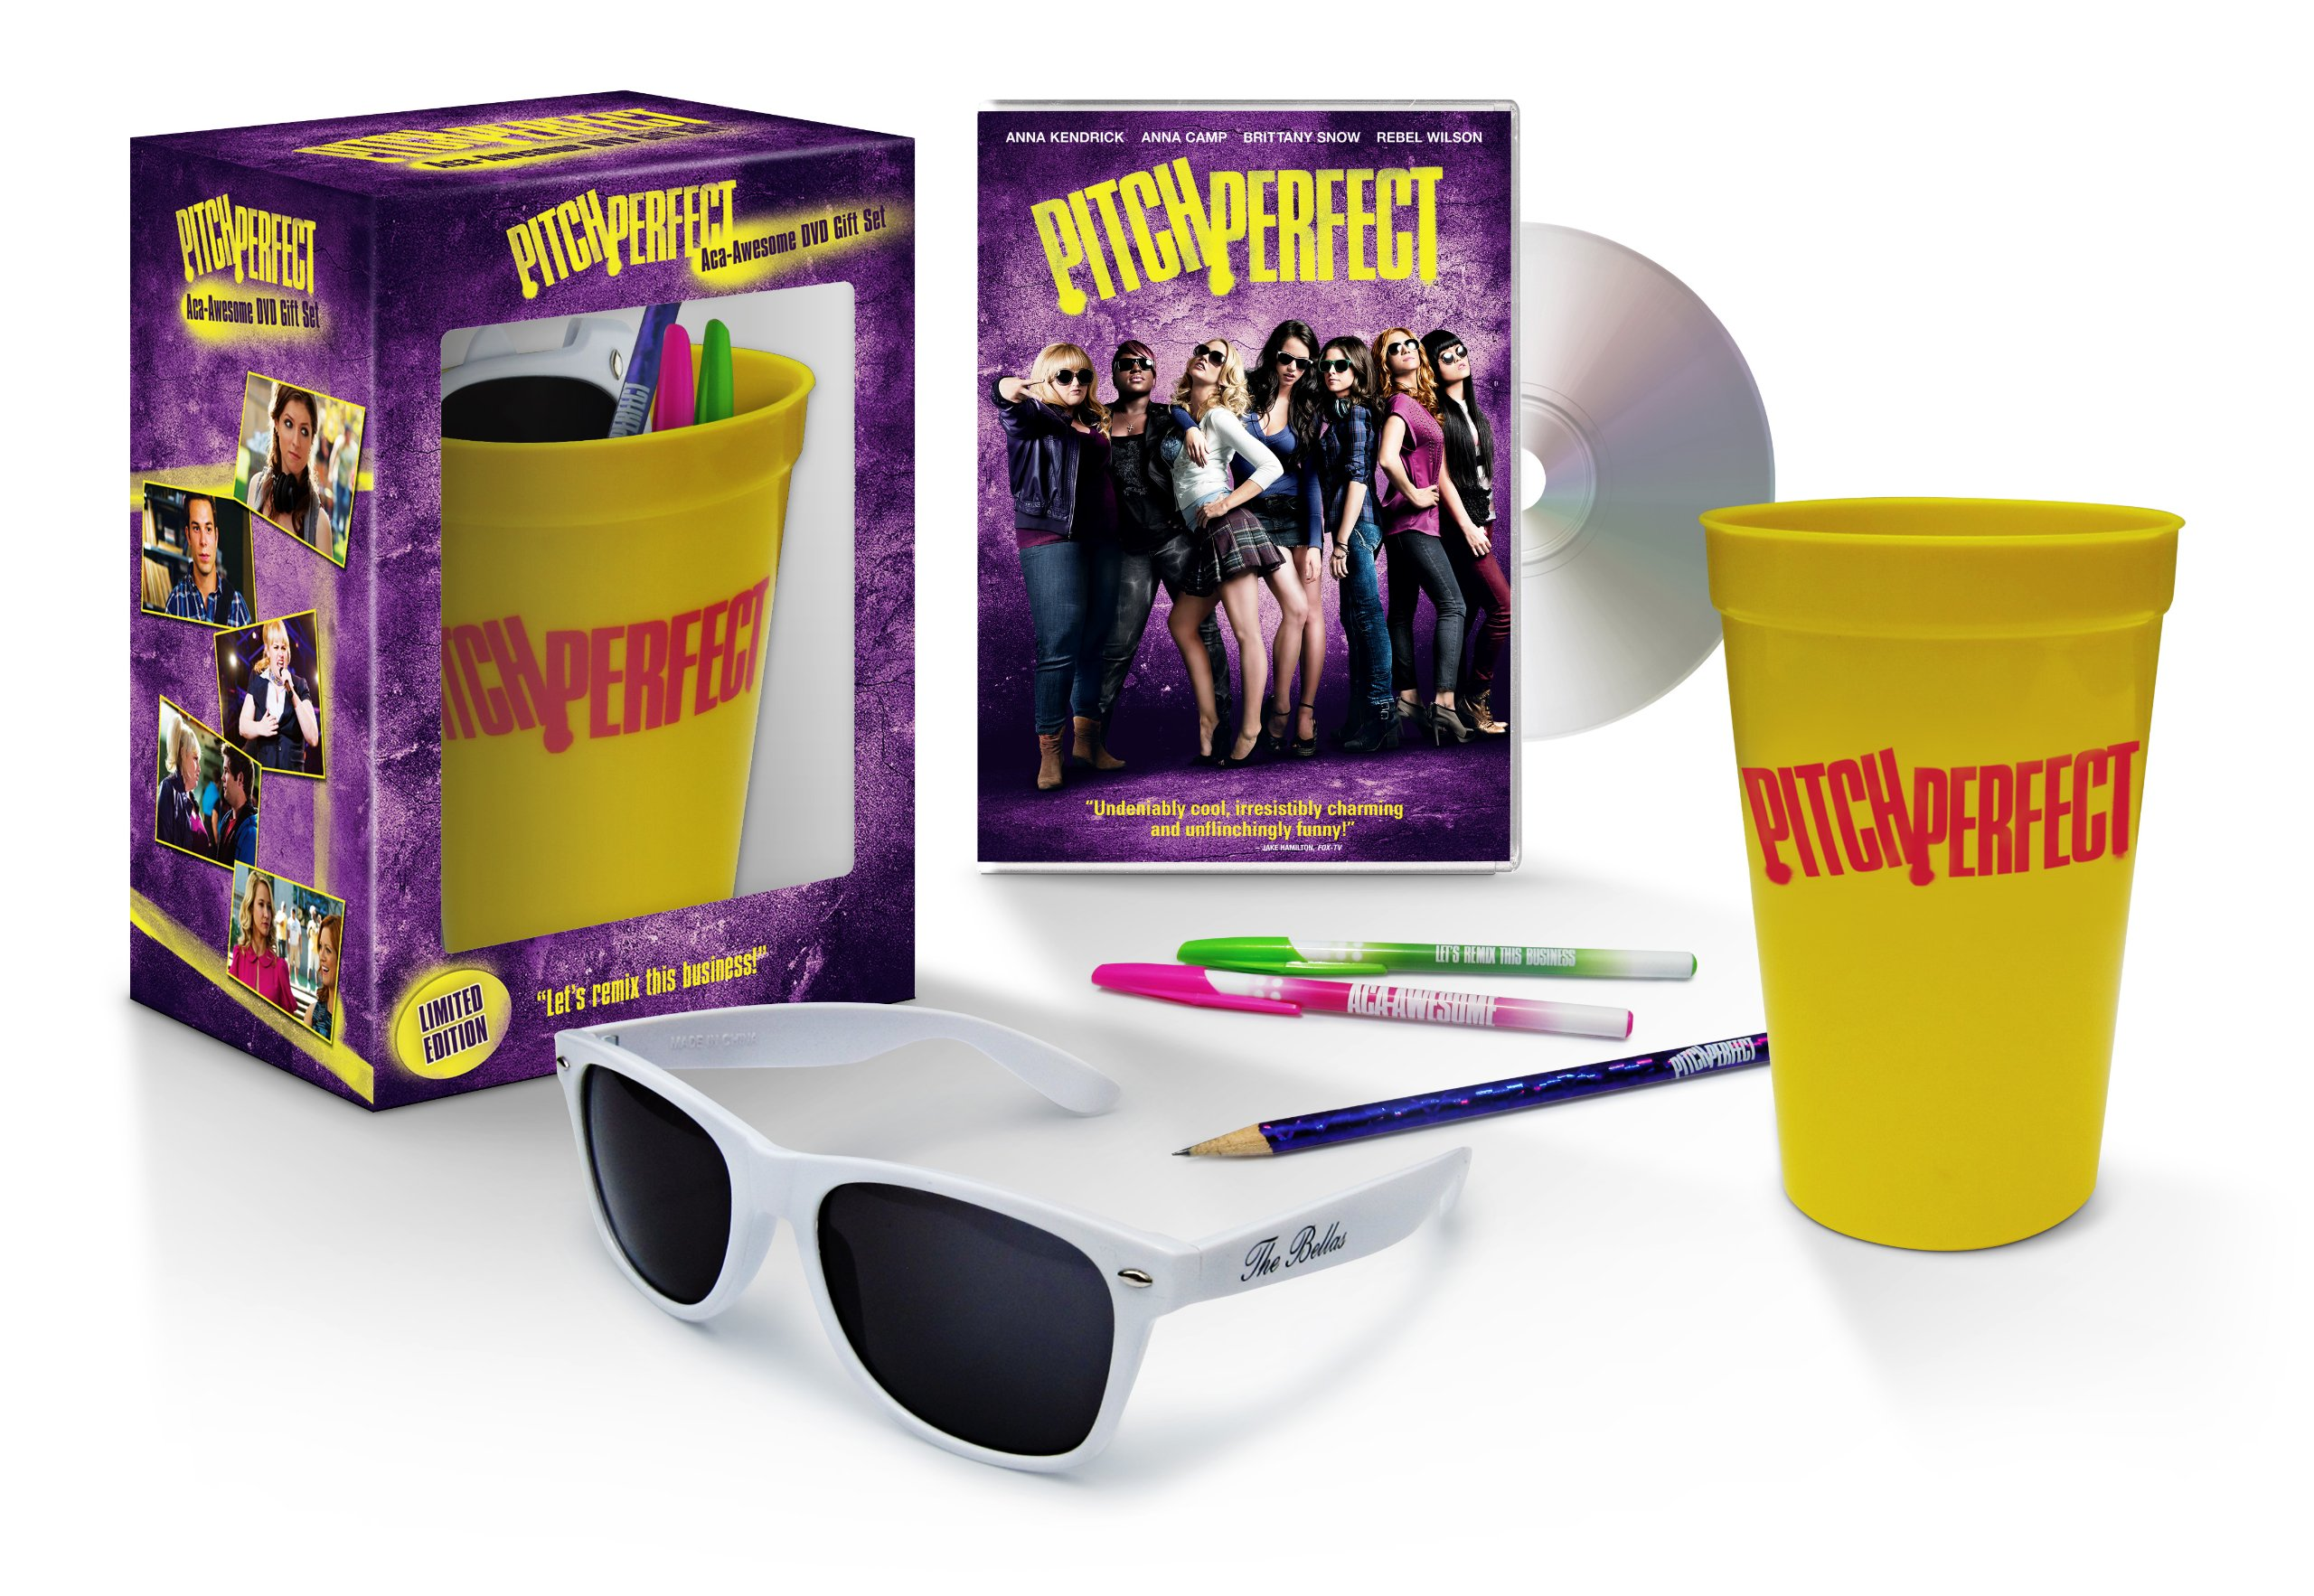 Pitch Perfect Aca-Awesome Gift Set